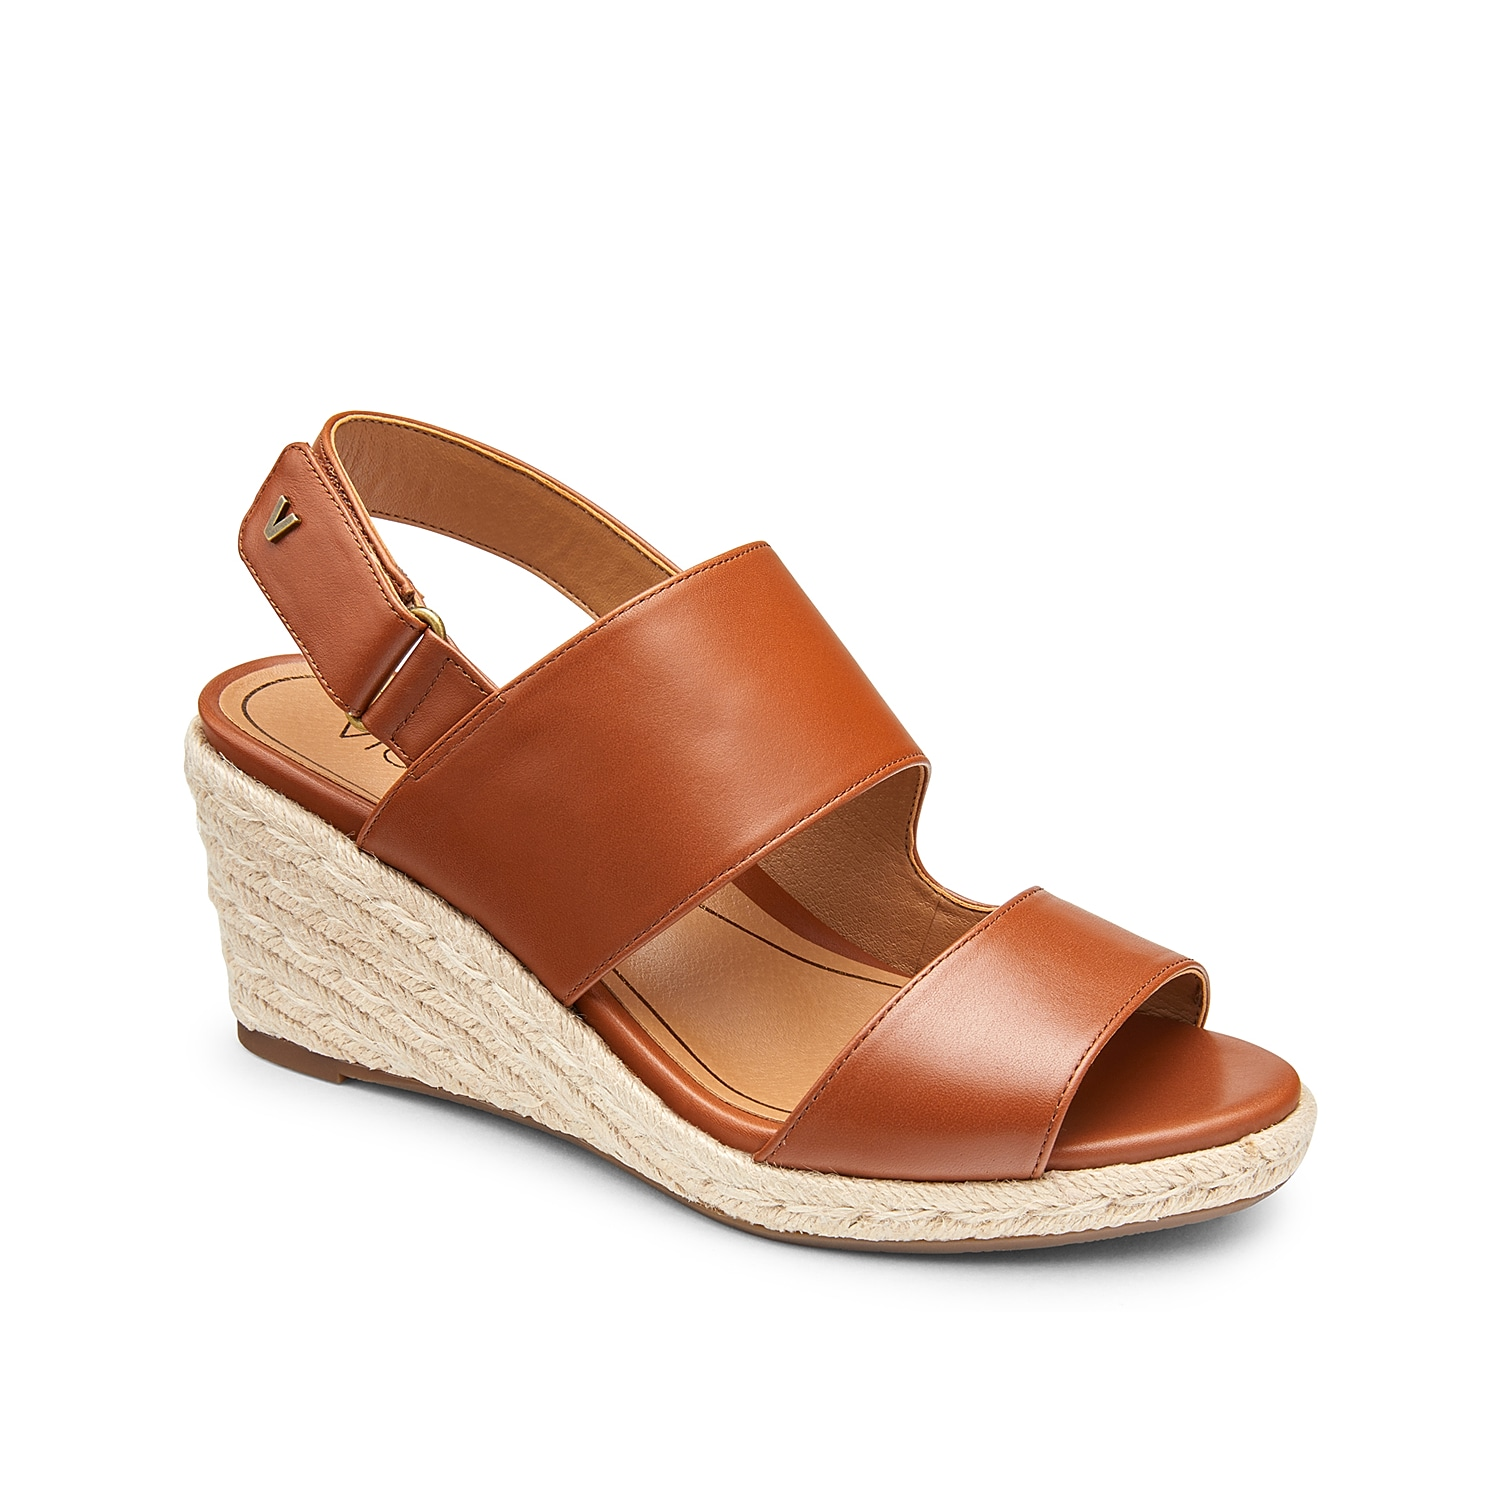 Elevate your sunny-day looks with the Brooke wedge sandal from Vionic. This leather pair is styled with broad straps, a beachy espadrille heel, and a hook and loop slingback strap for secure steps.